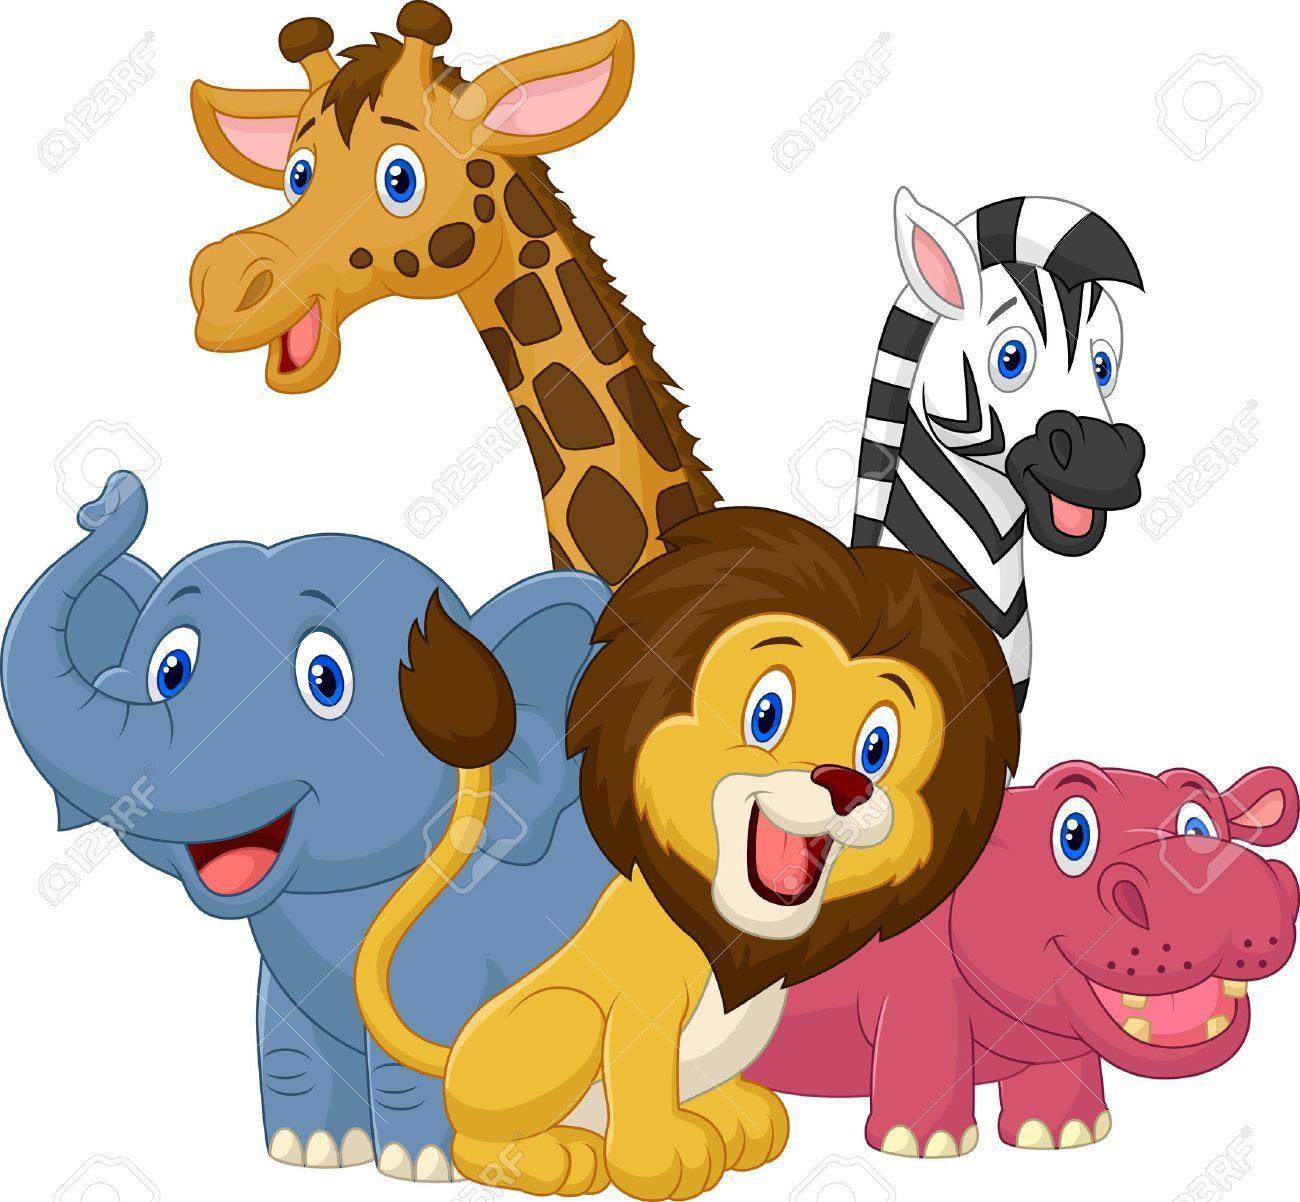 Stock Vector Cartoon jungle animals, Safari animals